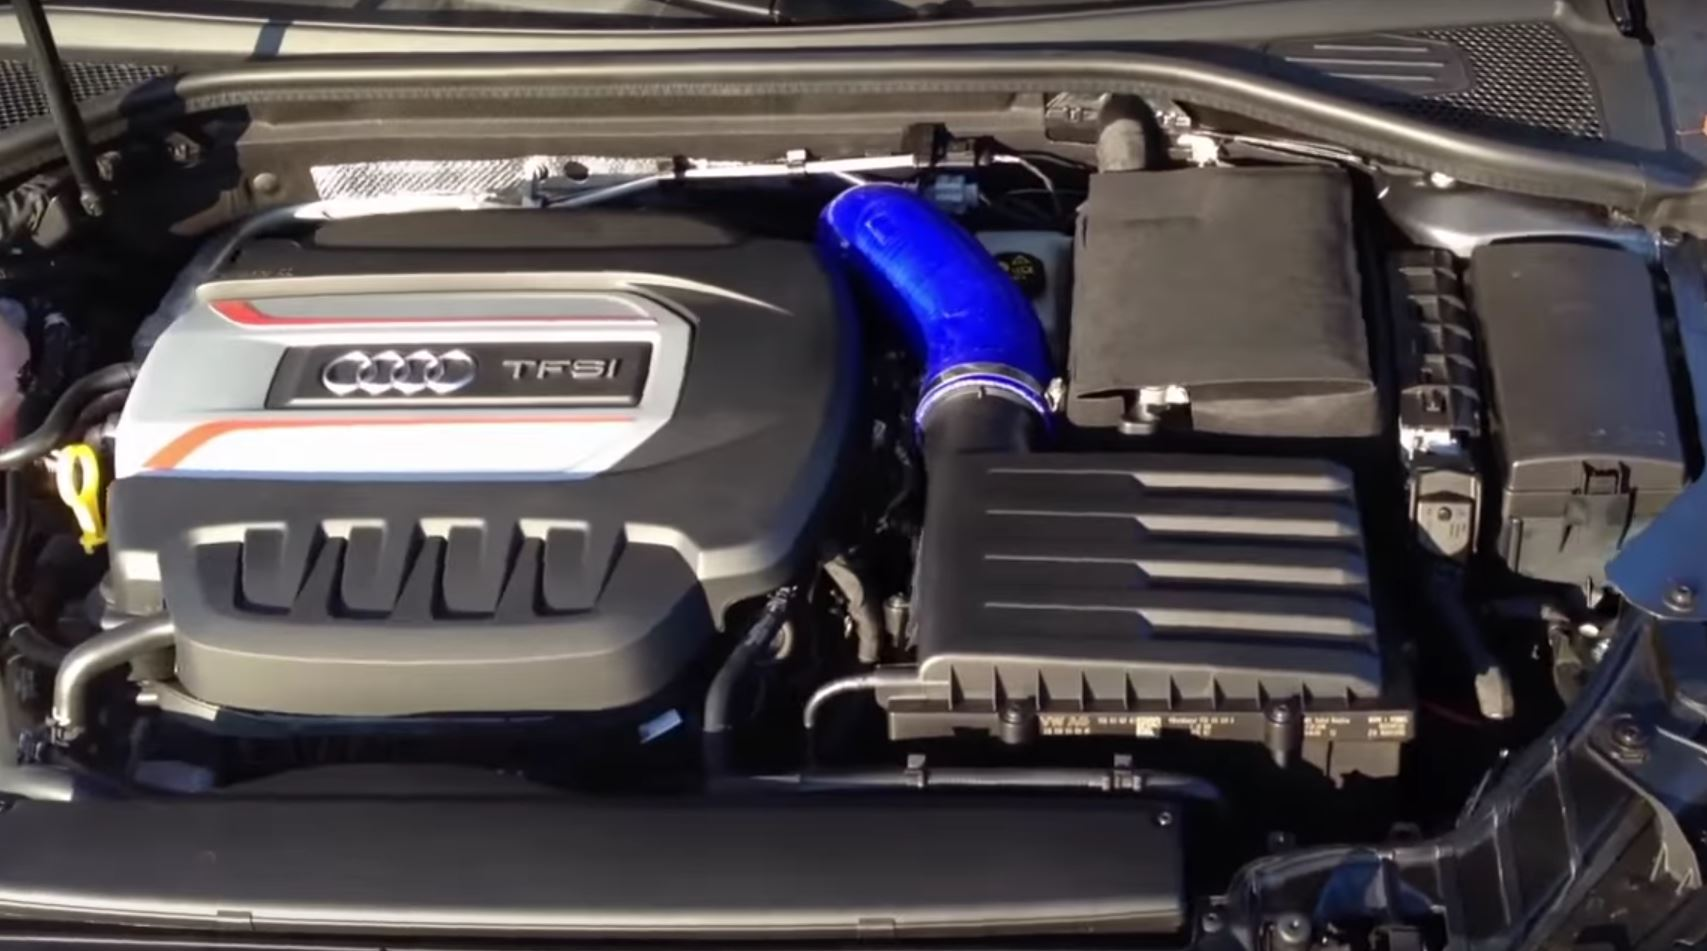 Audi S With HP By HGP Turbo Is SupercarFast Autoevolution - Audi s3 engine